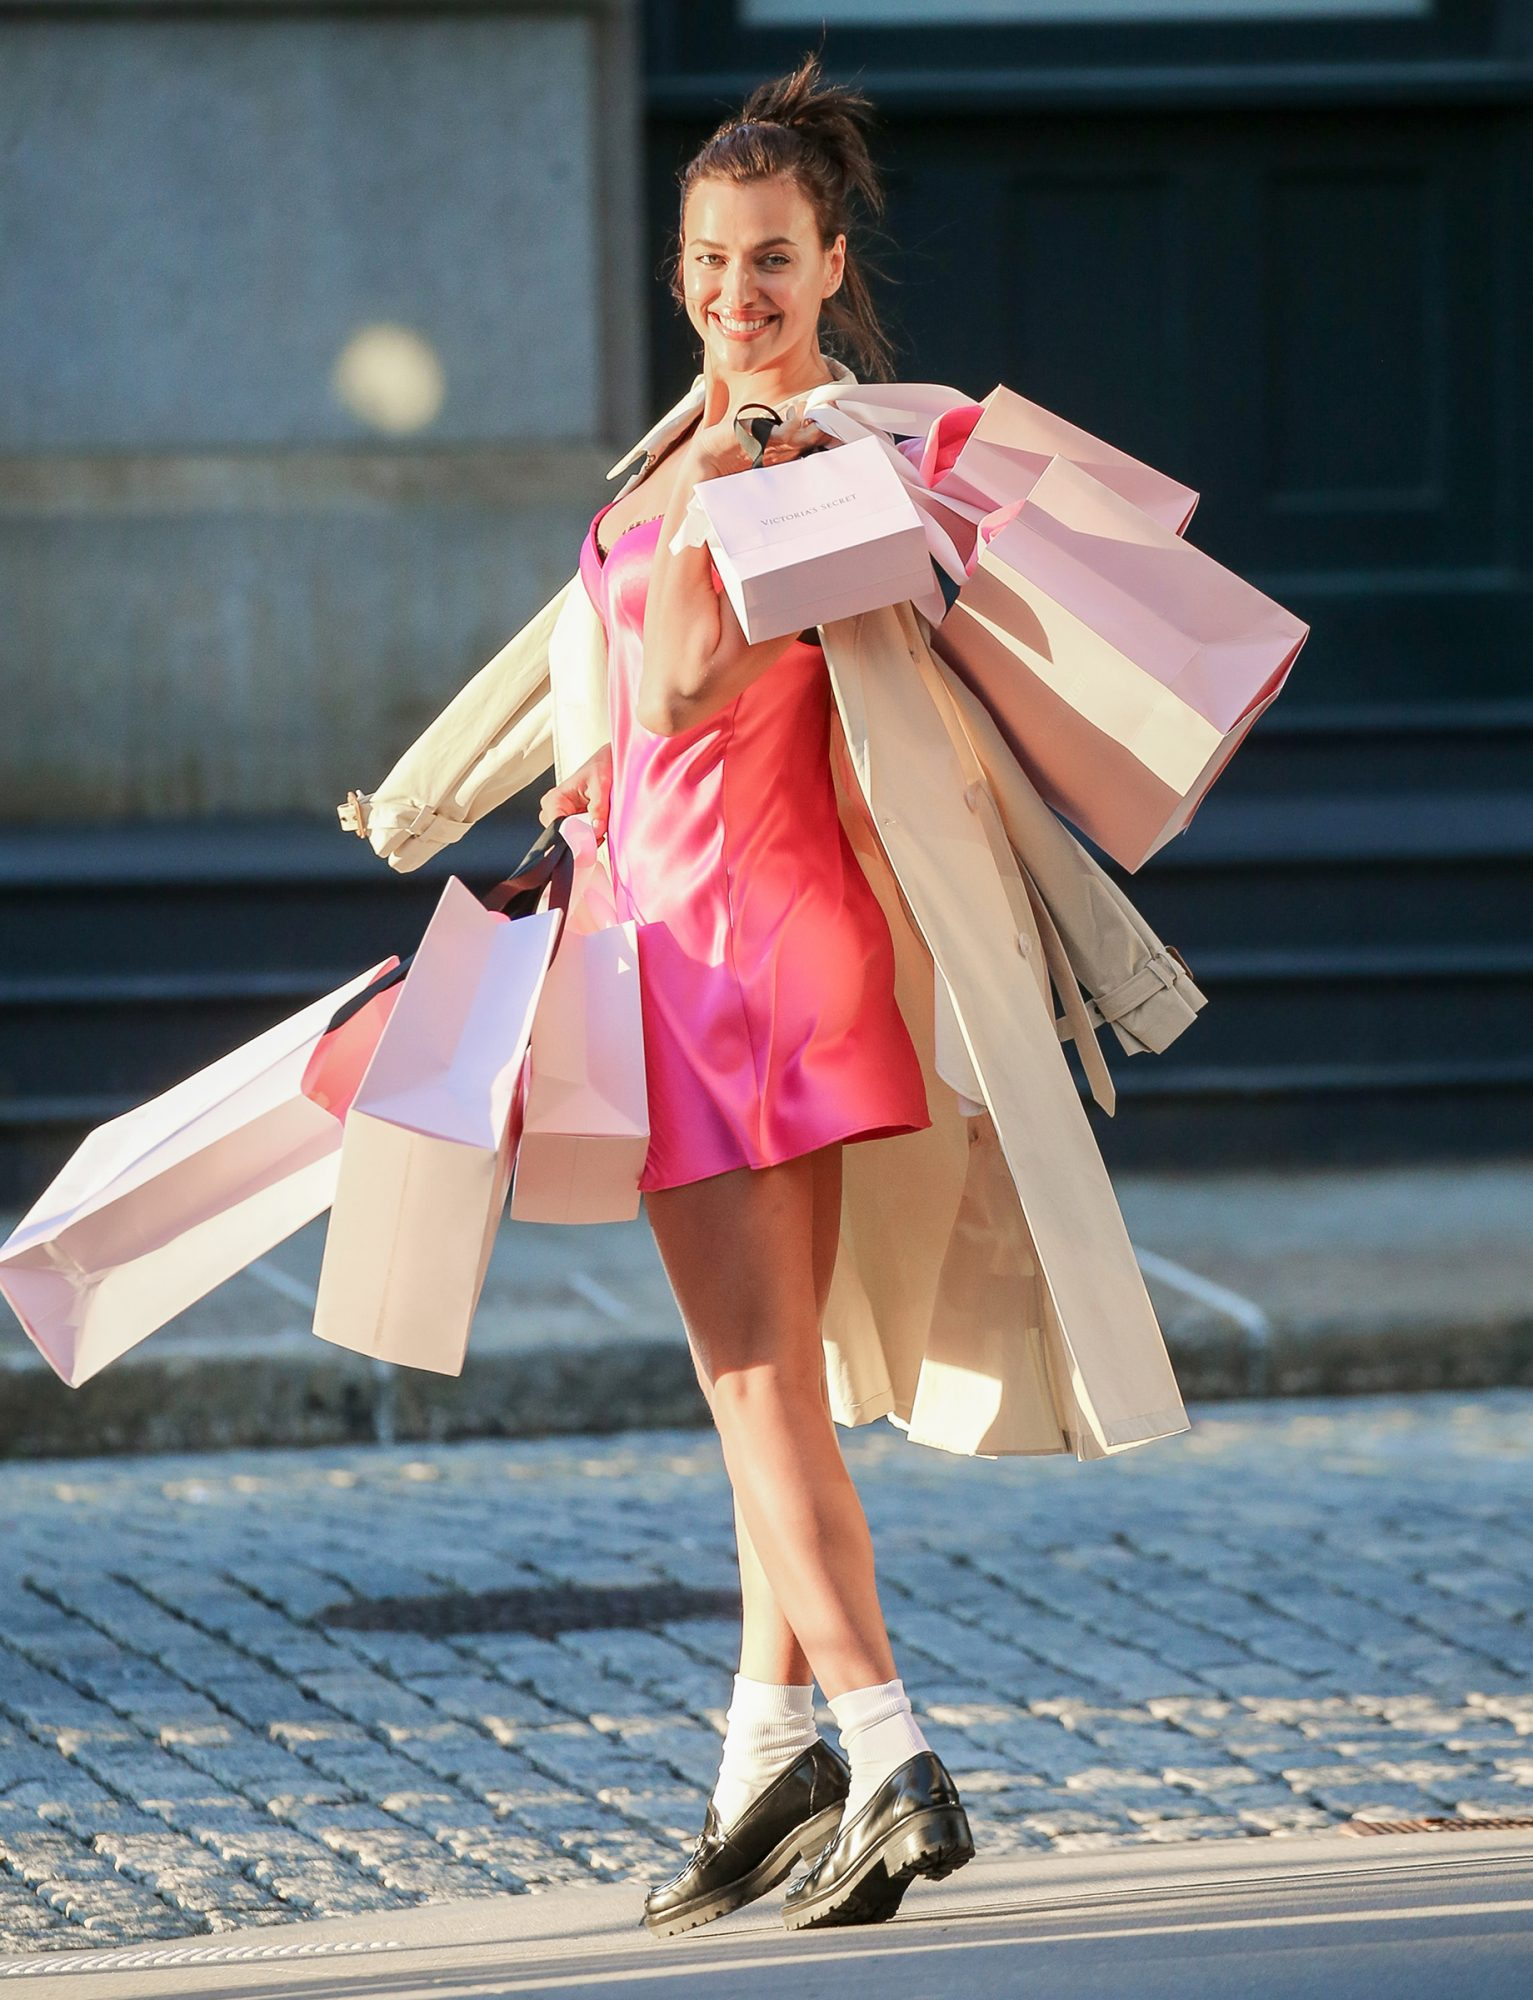 Irina Shayk flash a big smile while she's all full hands with Shopping bags while doing a photoshoot for Victoria Secret in Tribeca, NYC